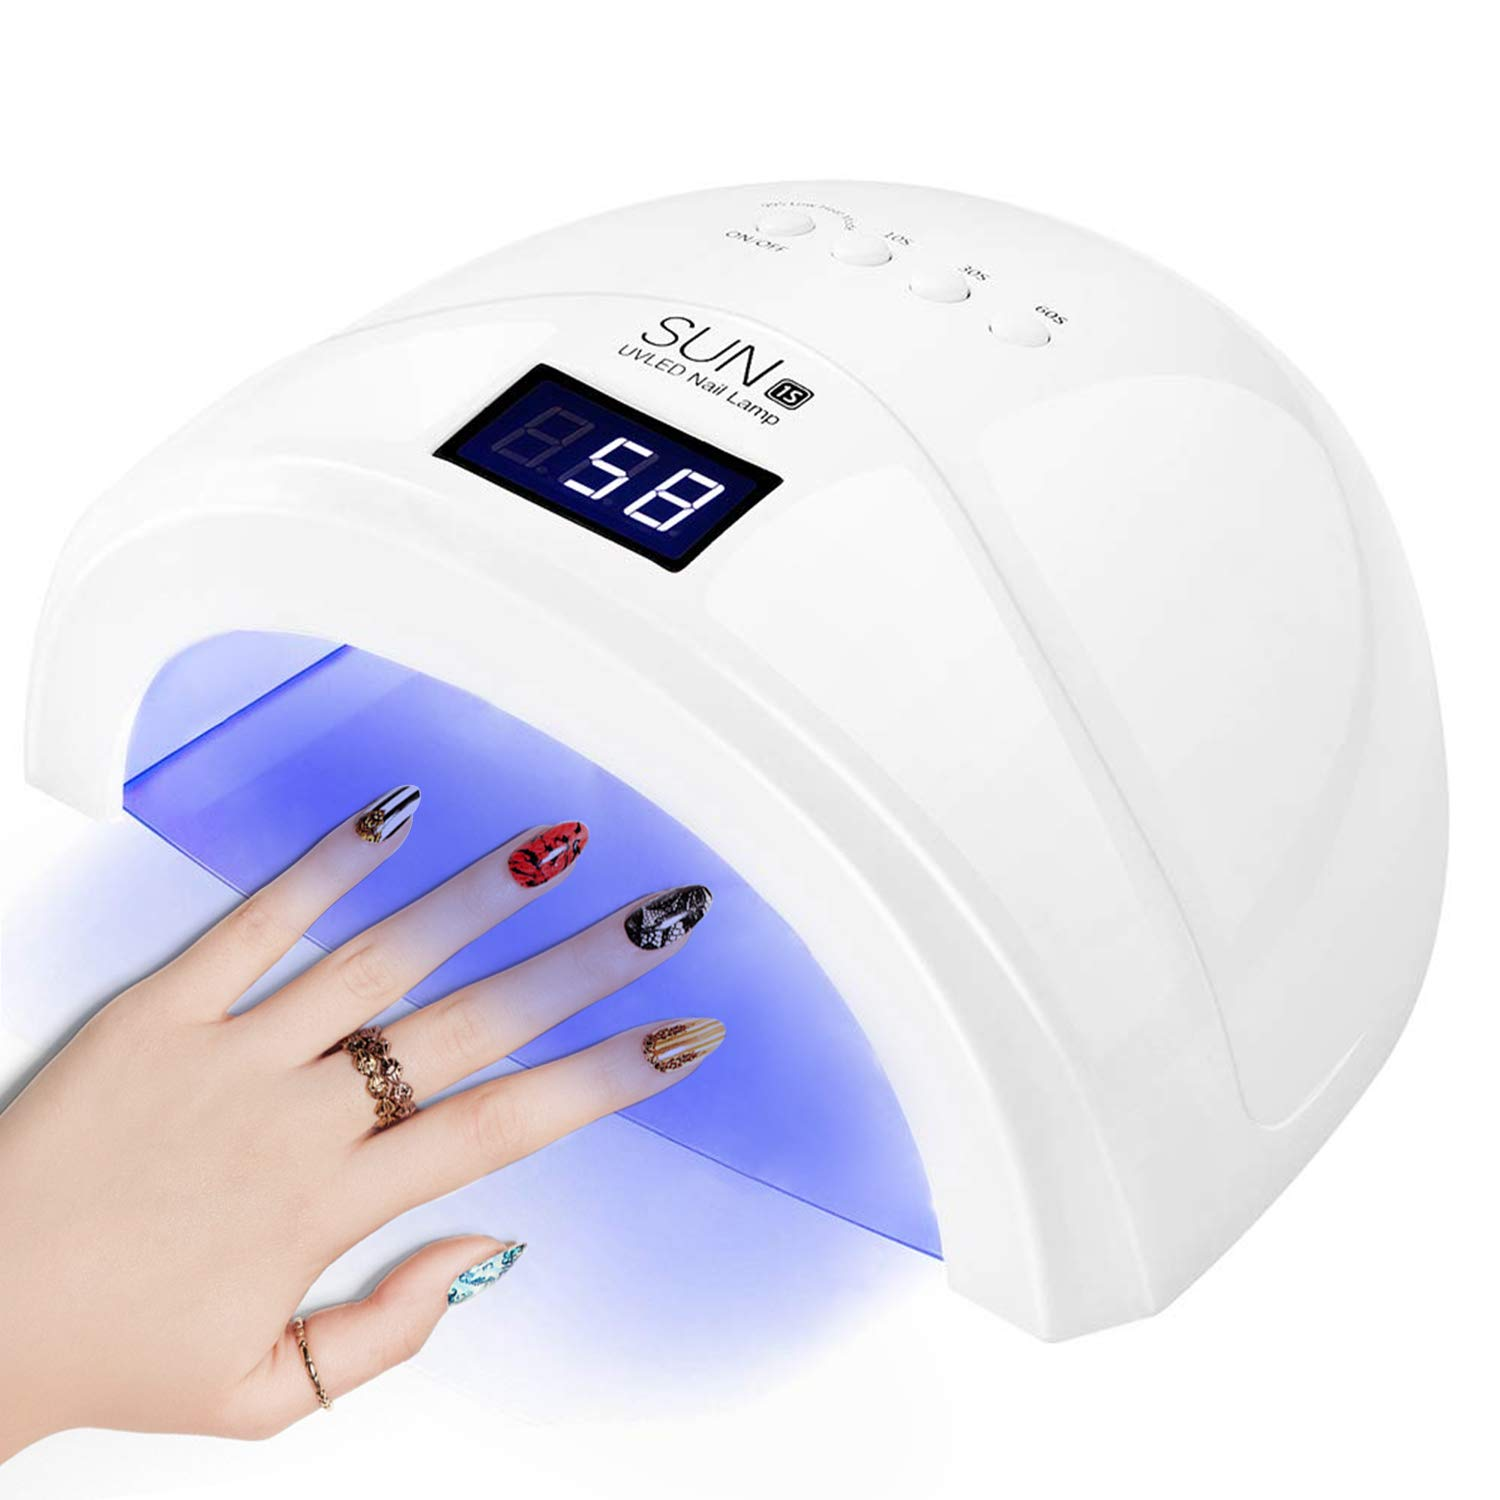 LED UV Nail Lamp 48W Nail Dryer for Gel Polish with 4 Timer Settings Automatic Sensor, Art Professional